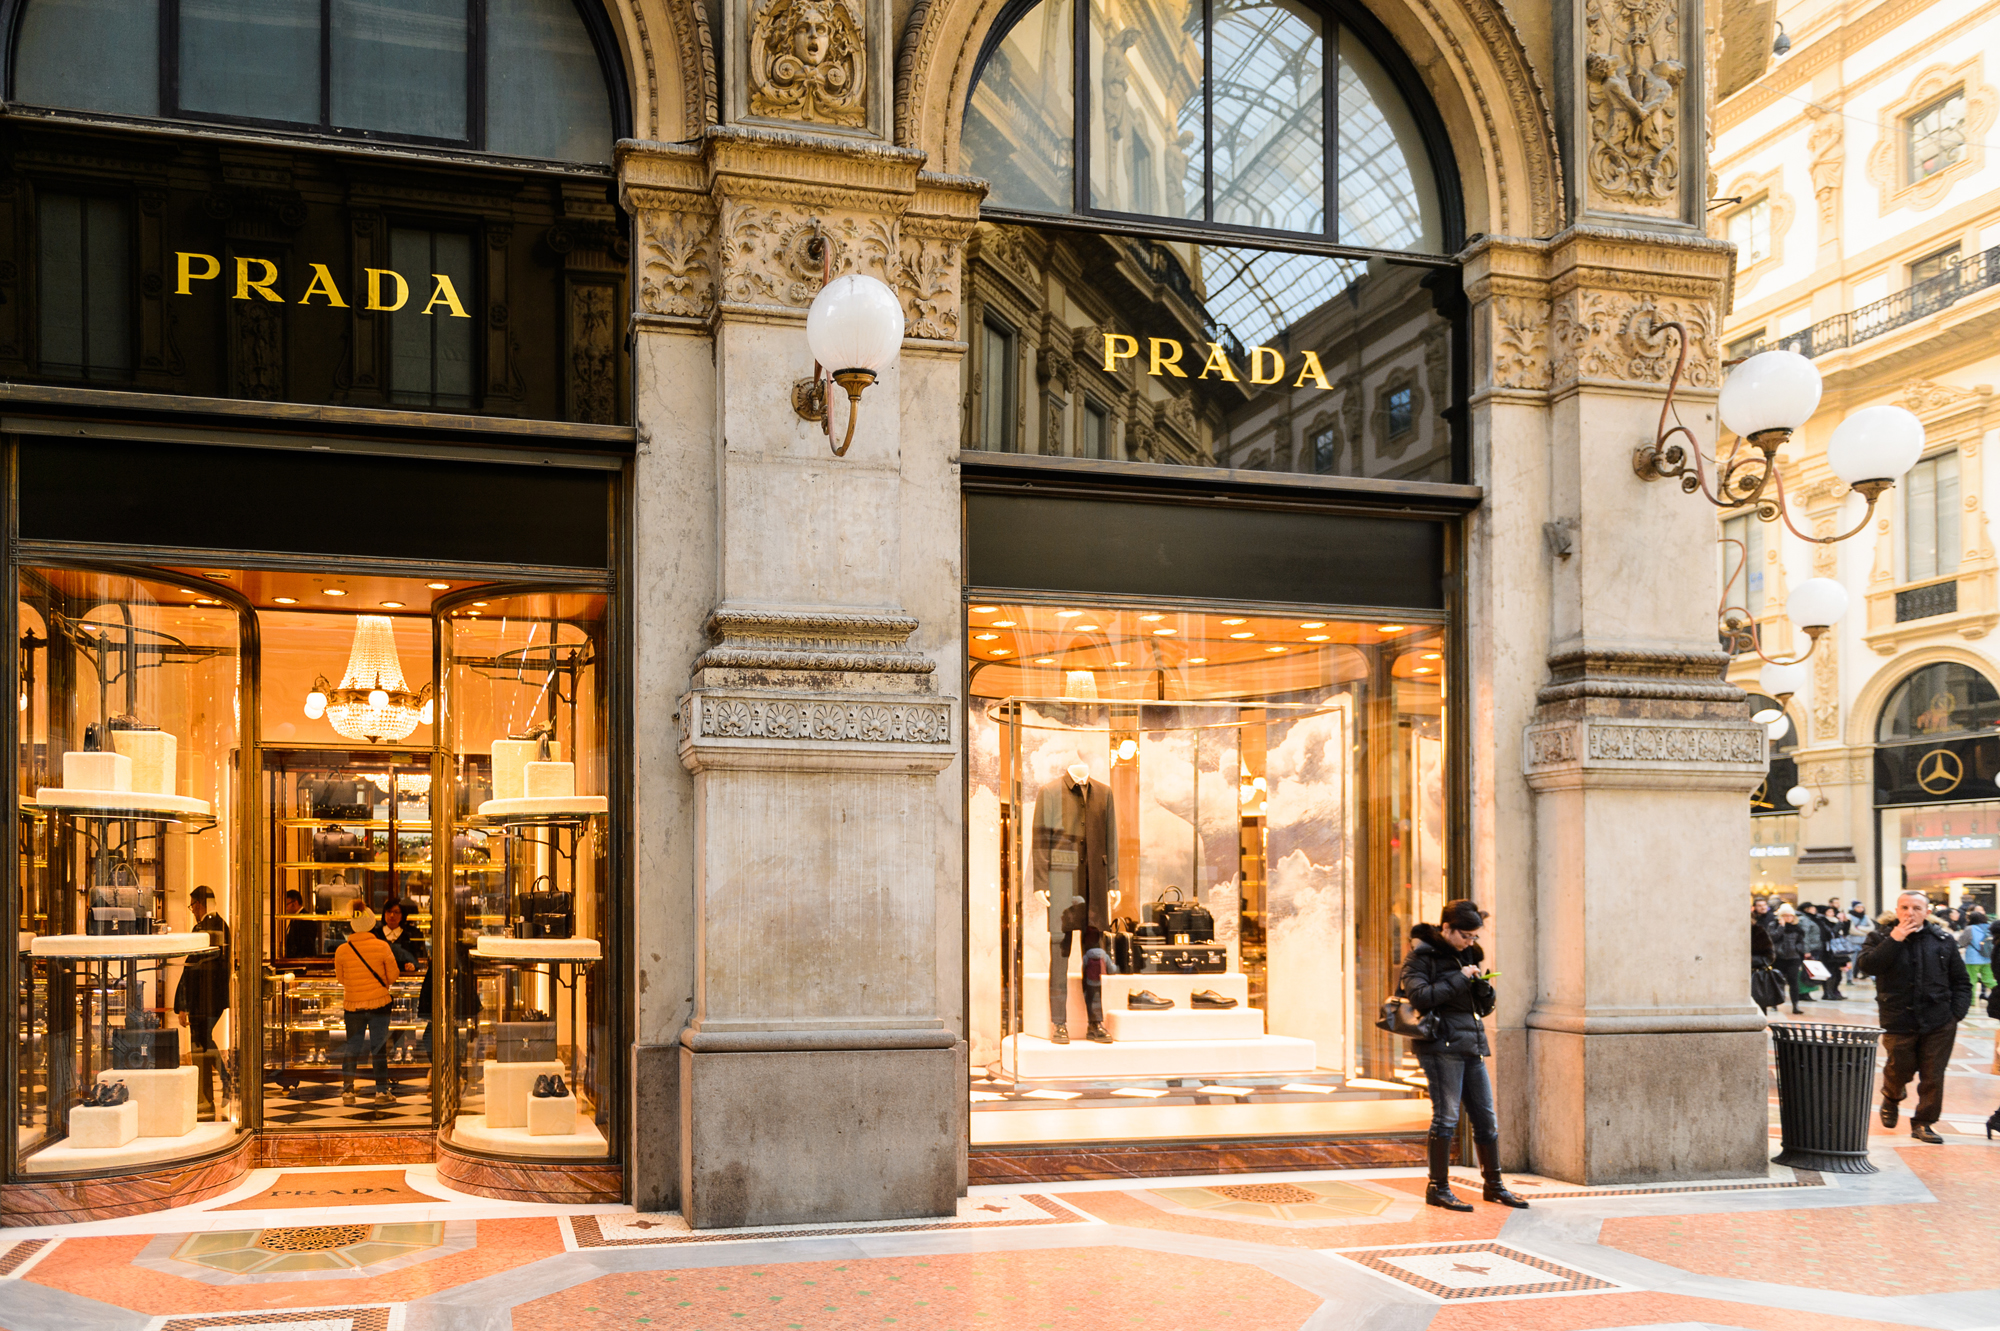 Luxury Guide: must-see places in Milan Mirrors Golden Mirrors to give your home a luxury look luxury guide milan Mirrors Golden Mirrors to give your home a luxury look luxury guide milan